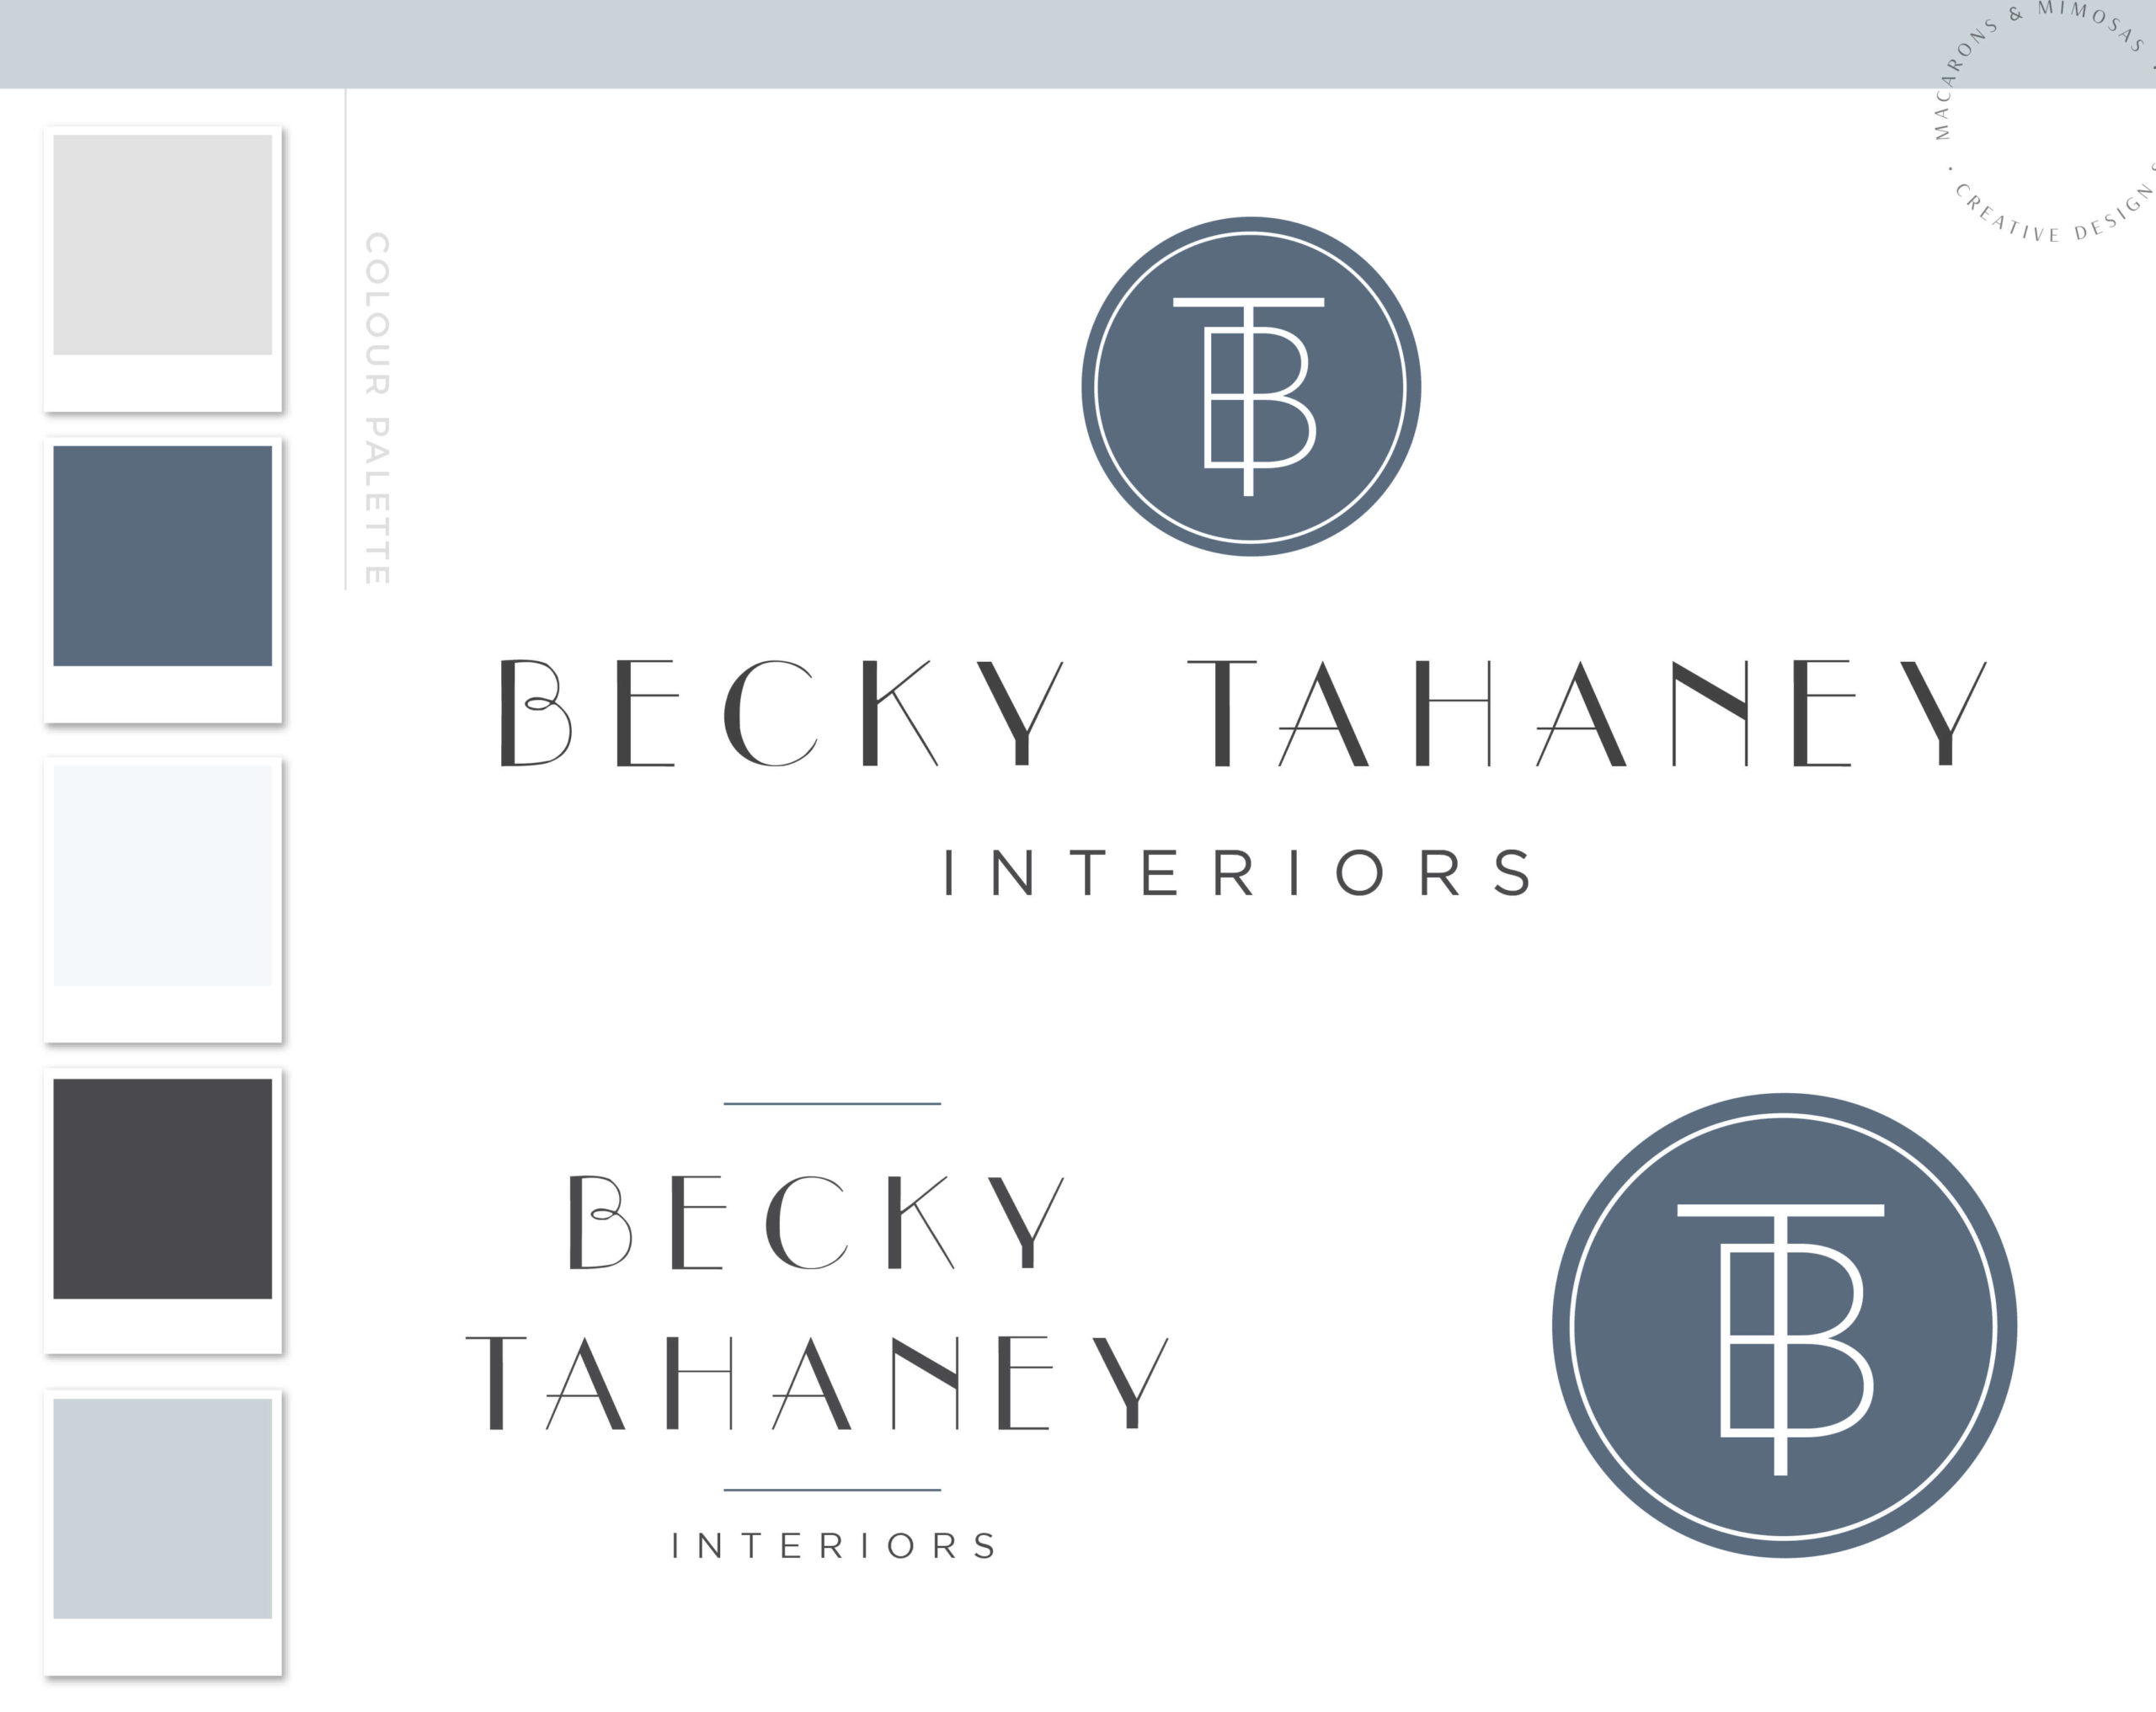 Business Logo & Branding Design for Photography, Watermark Logo kit package for custom Event Planners, Interior Design and Real Estate